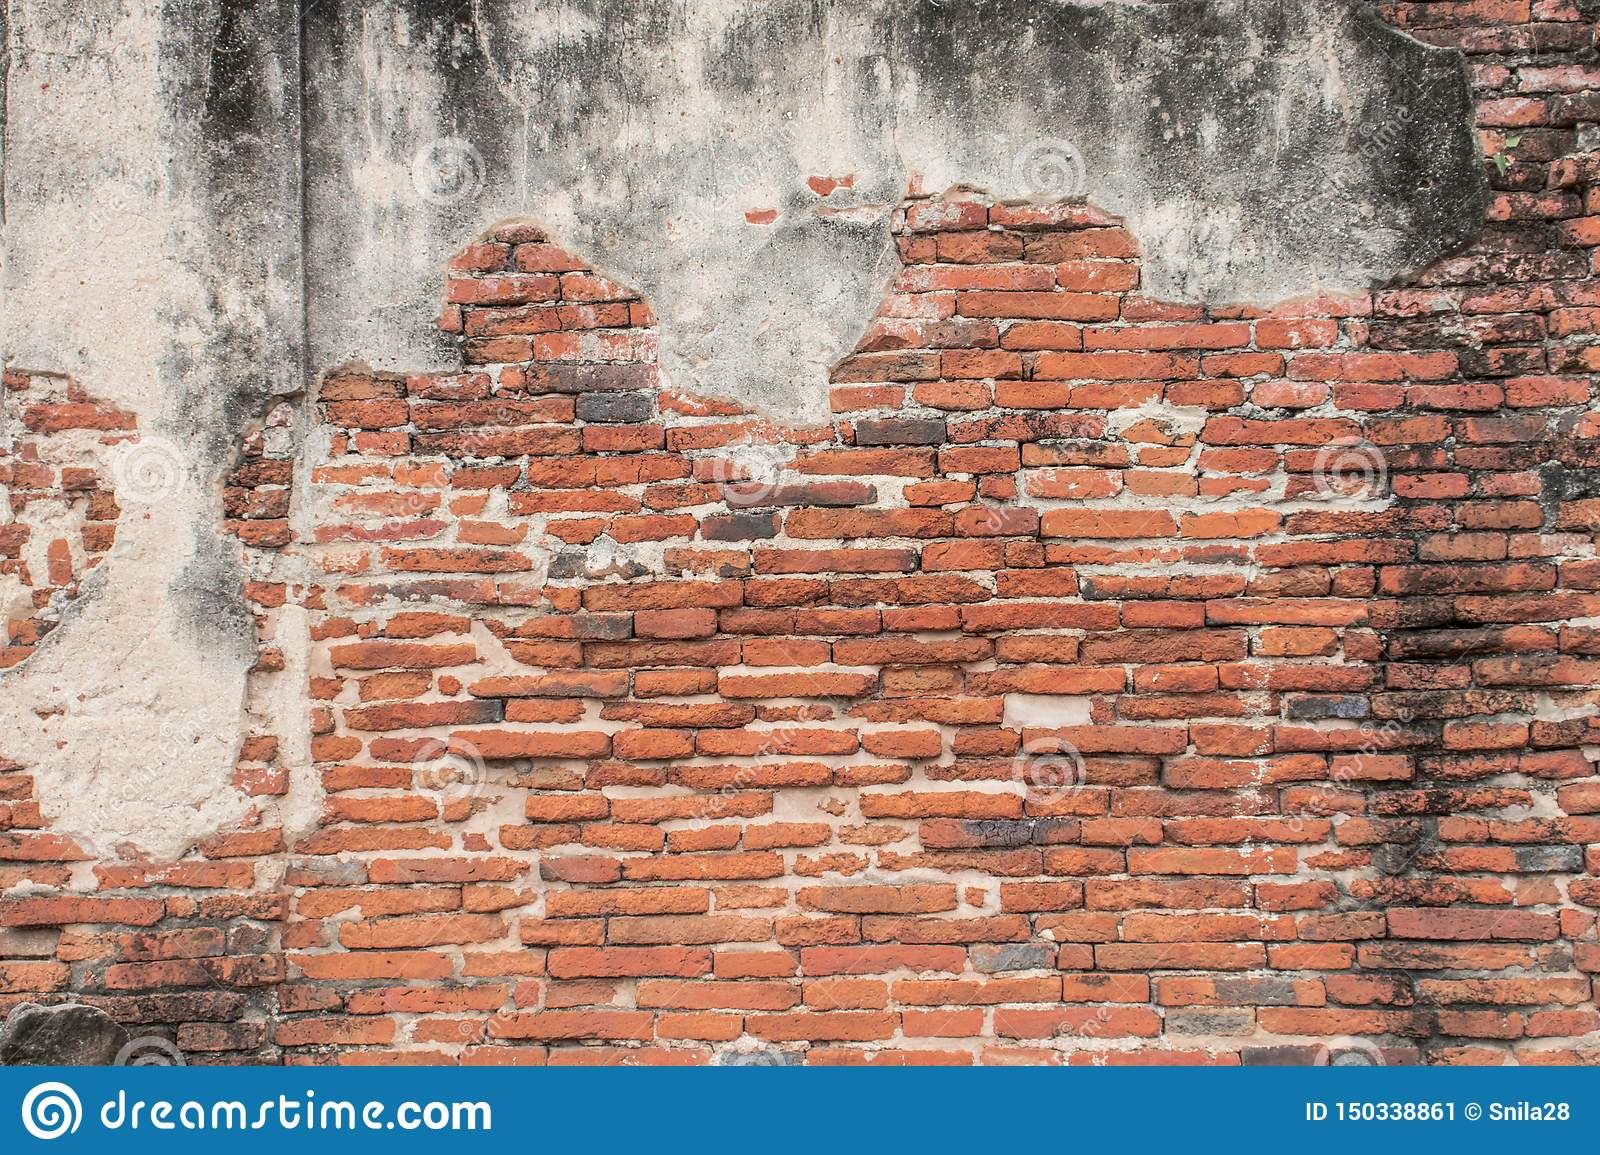 Old red Brick and cement dru Wall Texture background image. Grunge Red Stonewall Background